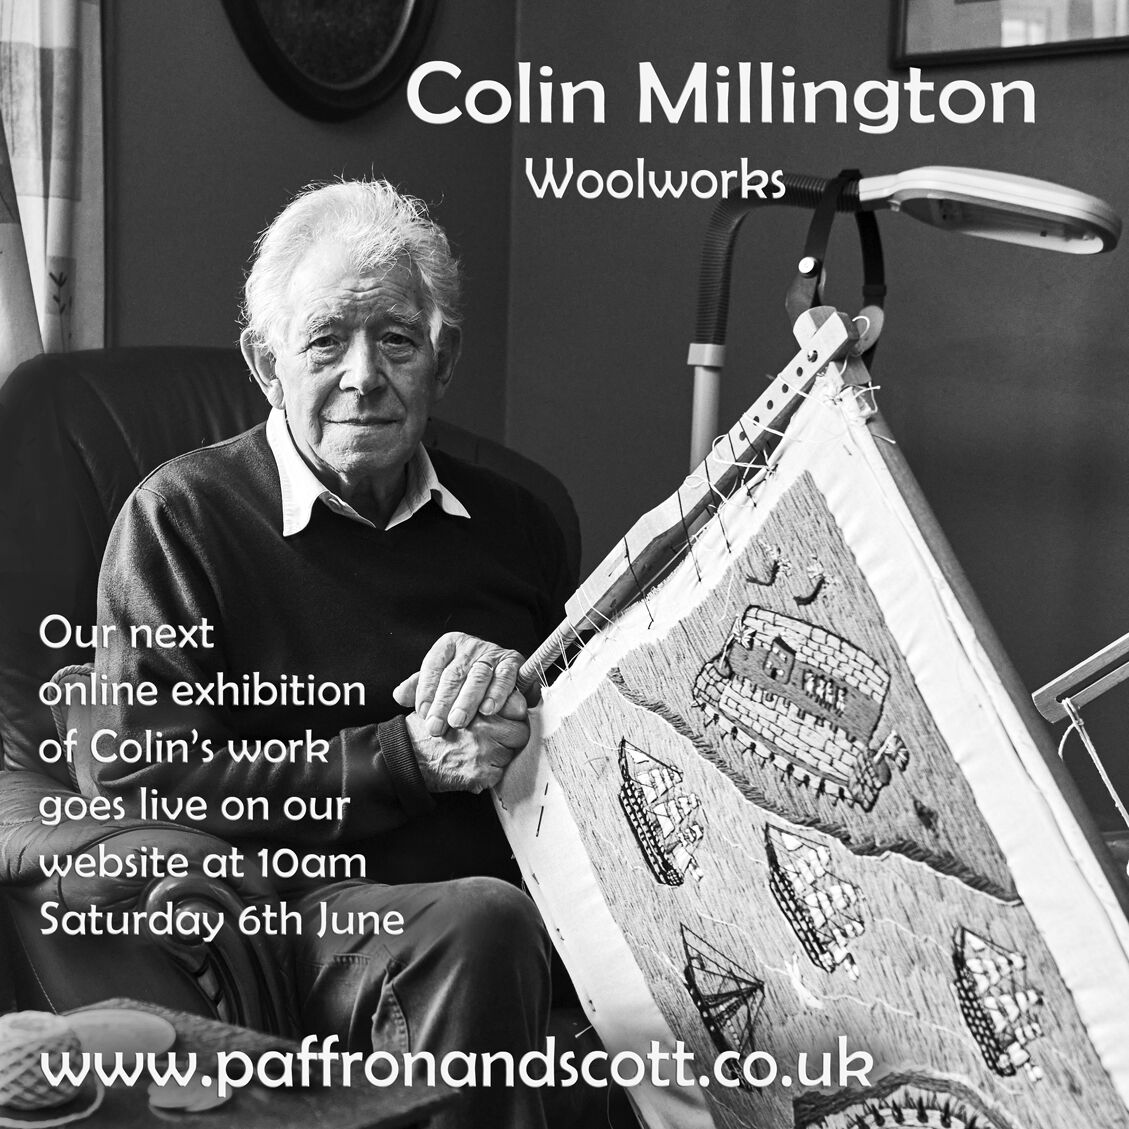 Colin Millington Woolworks exhibition